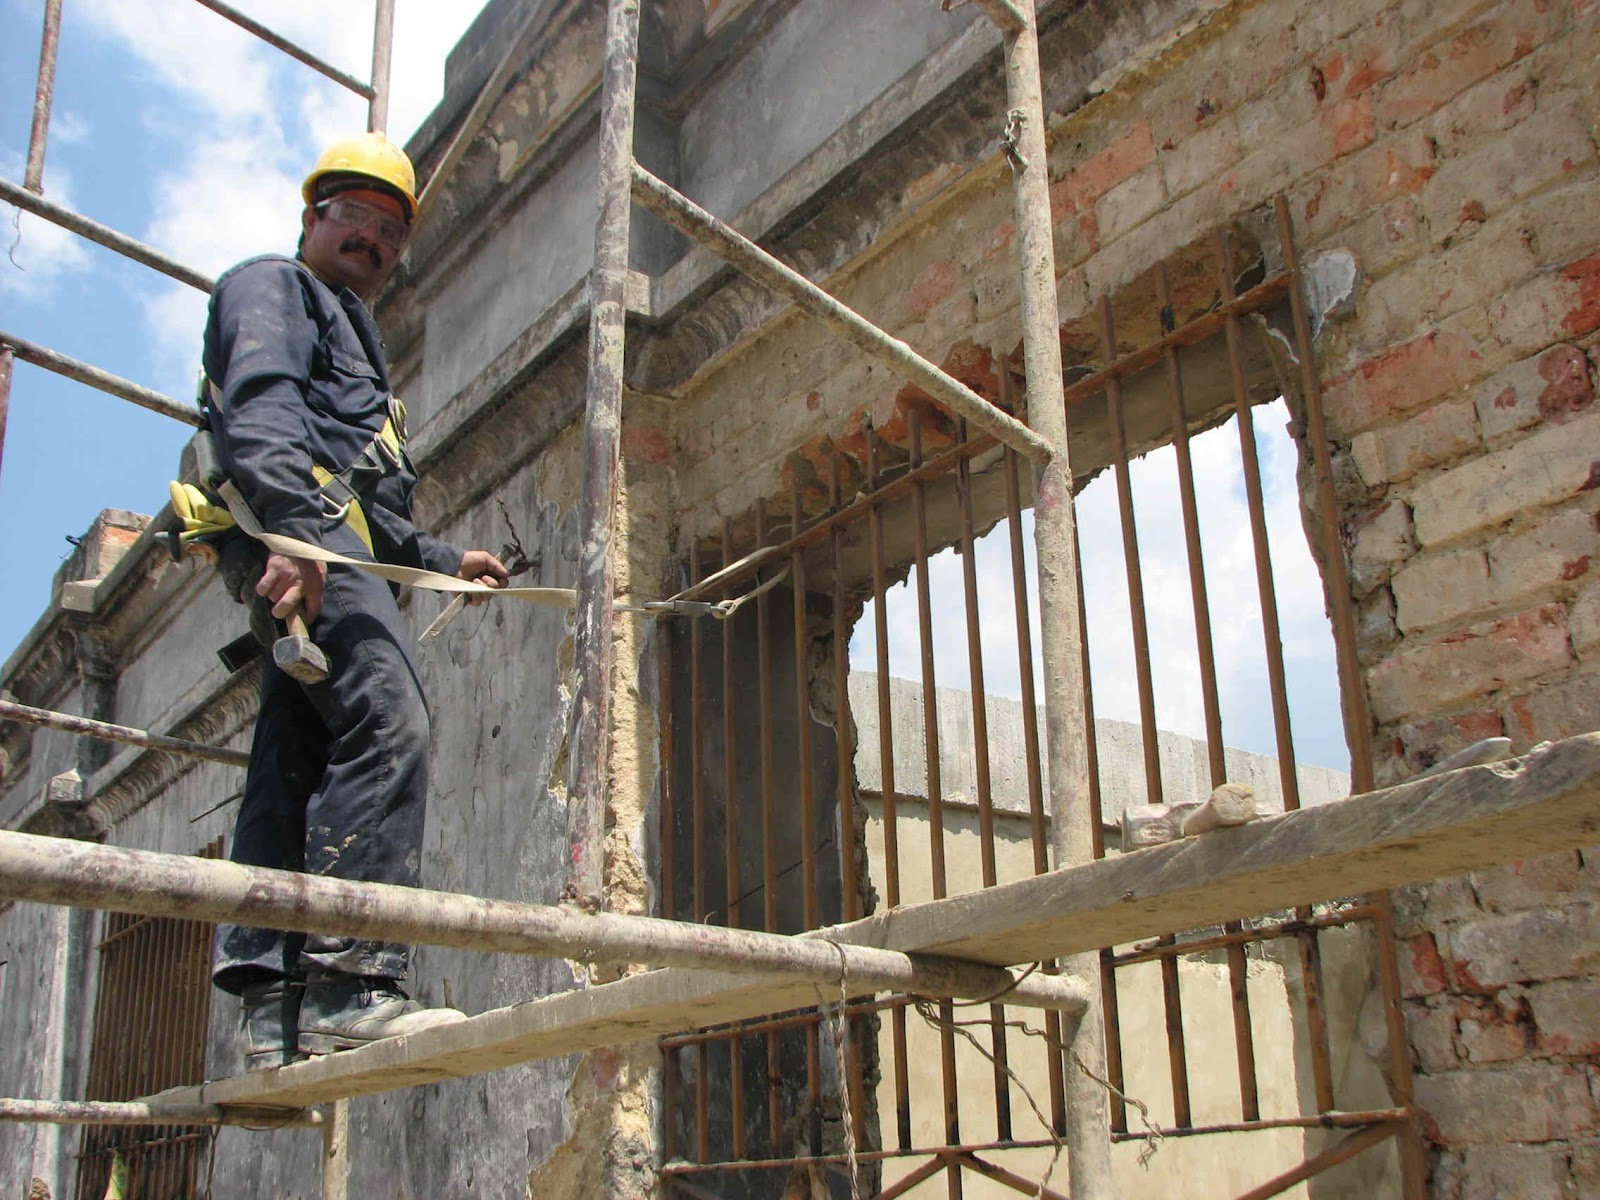 Mike S Bogota Blog A New Life For The Old Slaughterhouse